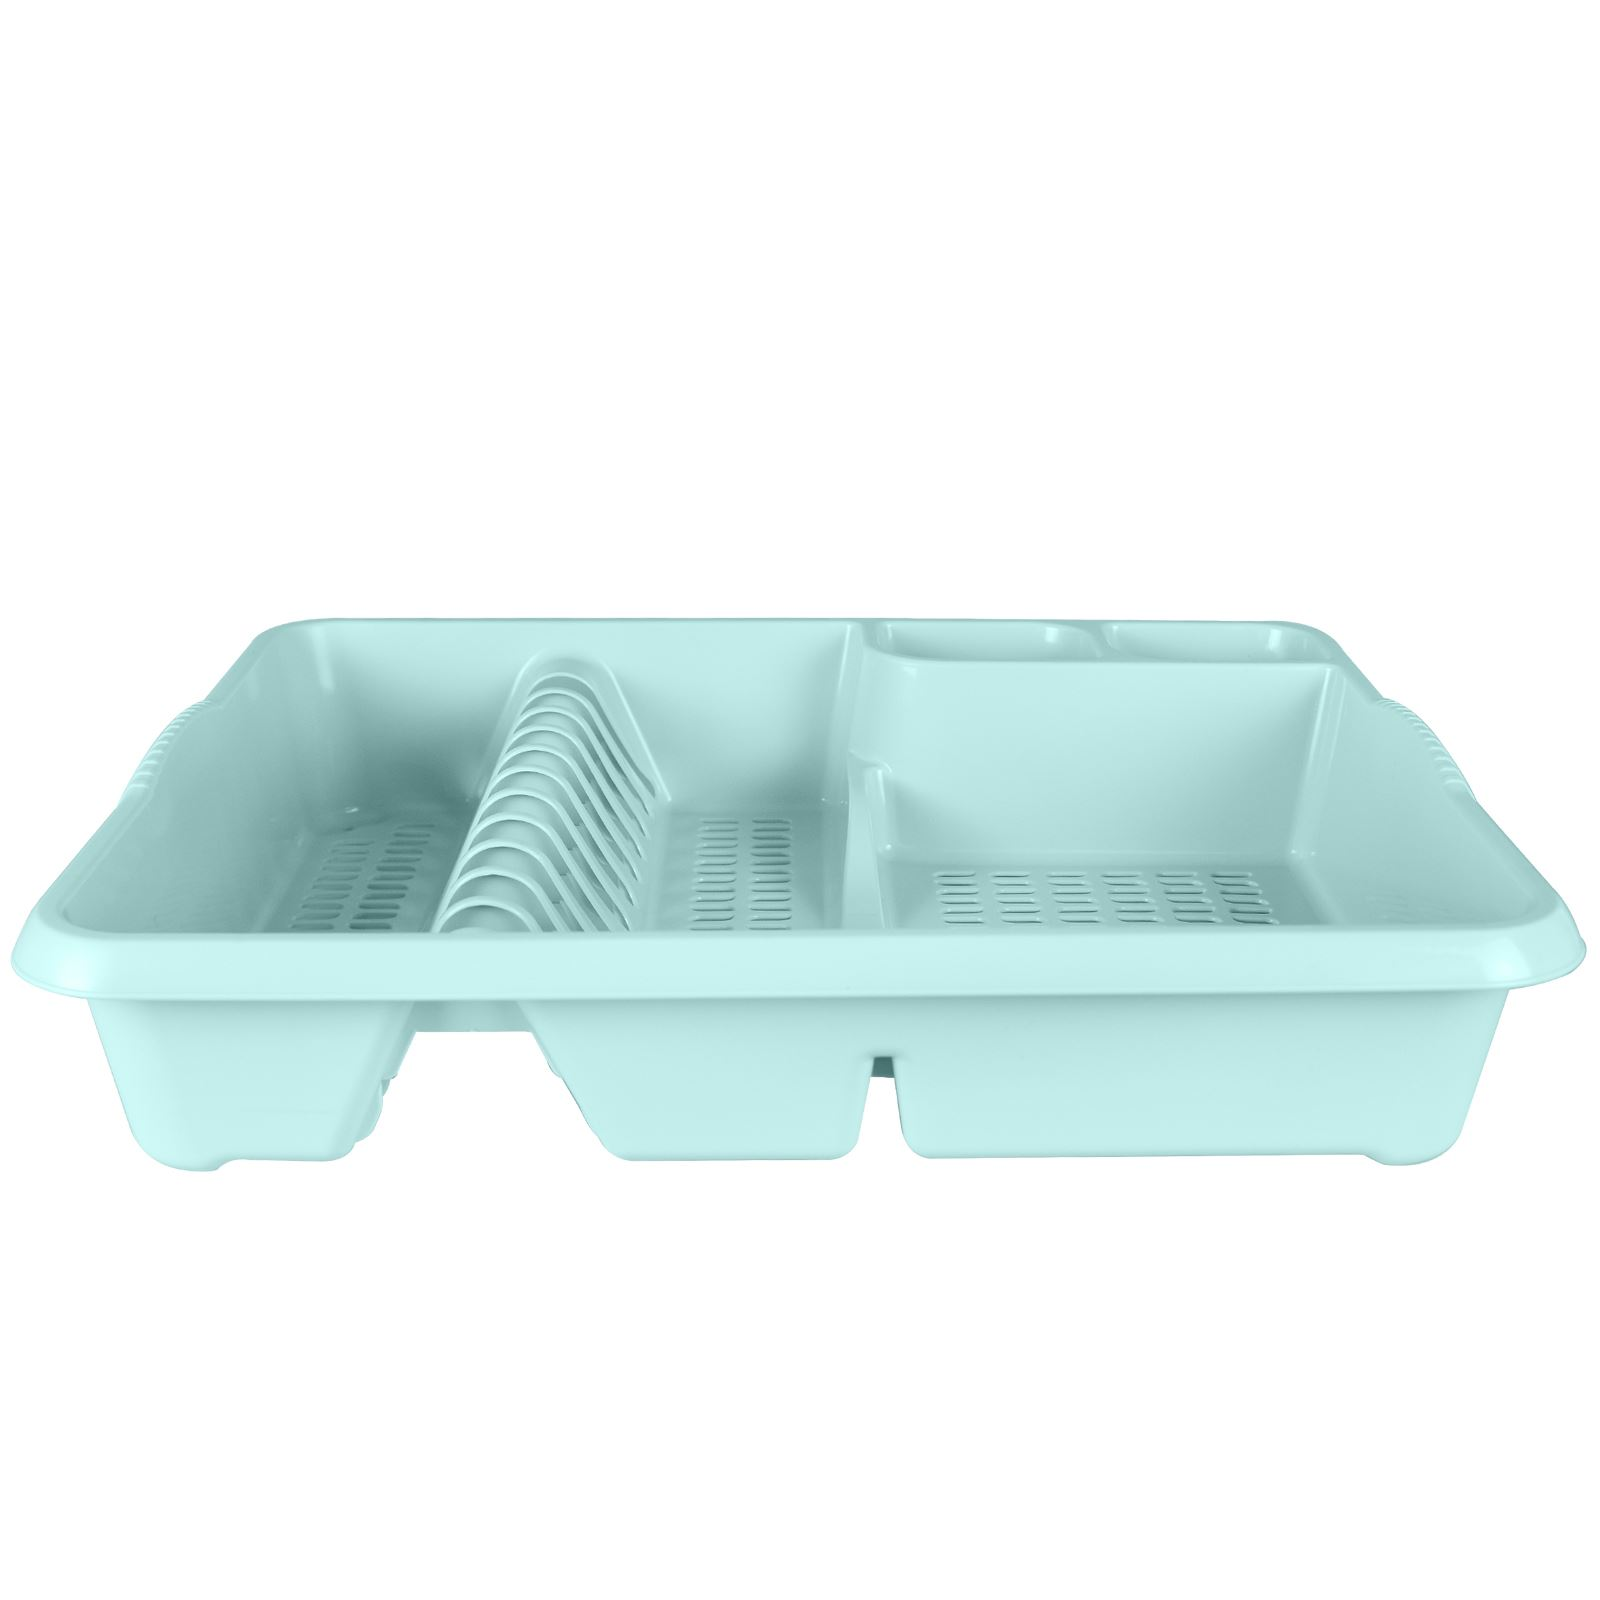 Details about High Grade Large Casa Plastic Draining Board Plate Cutlery Sink Tidy Rack Holder